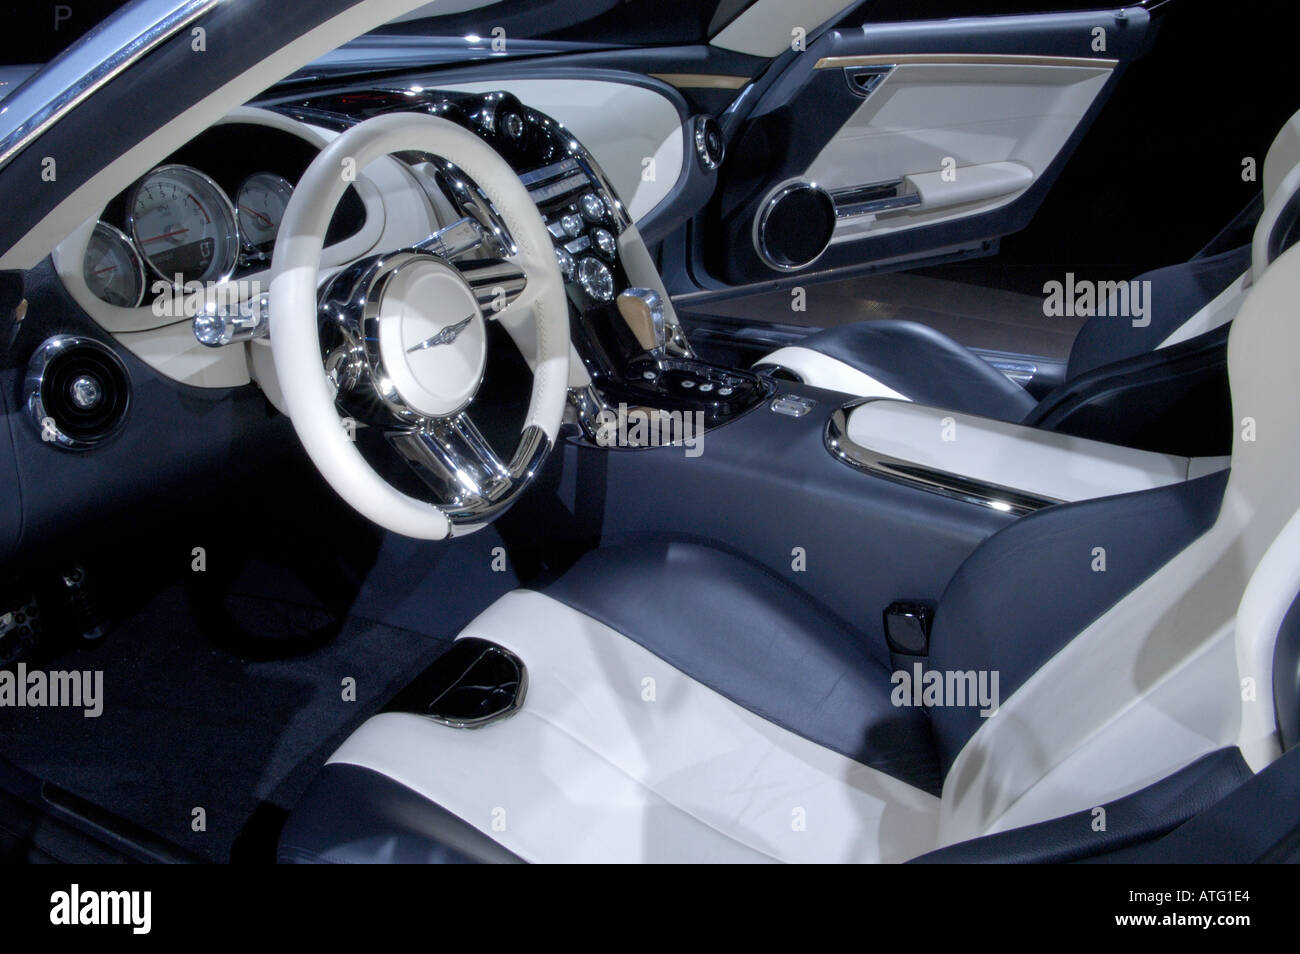 Chrysler Firepower Concept Car Interior At The North American Stock